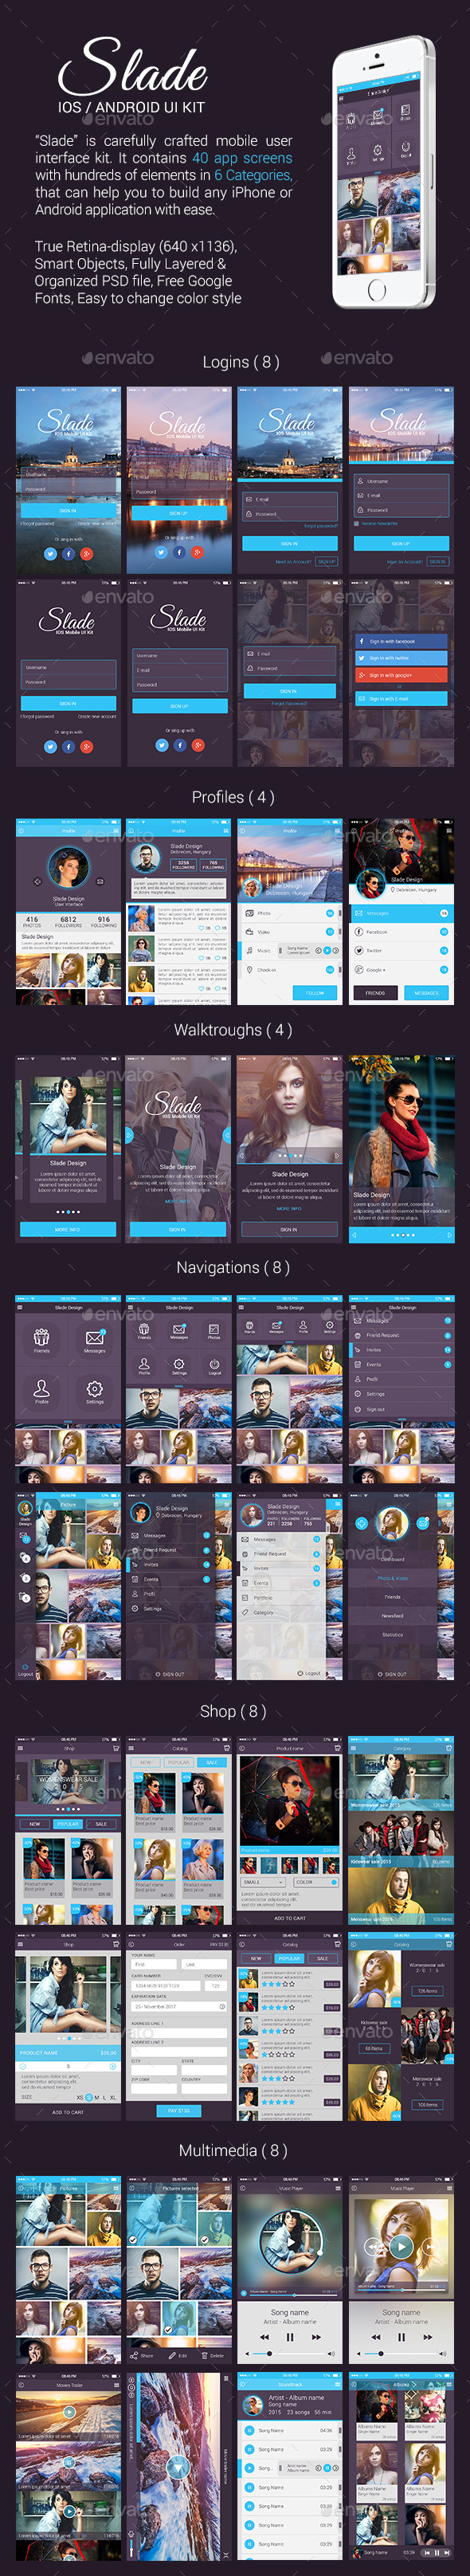 GraphicRiver Slade iOS Android UI Kit 9957548